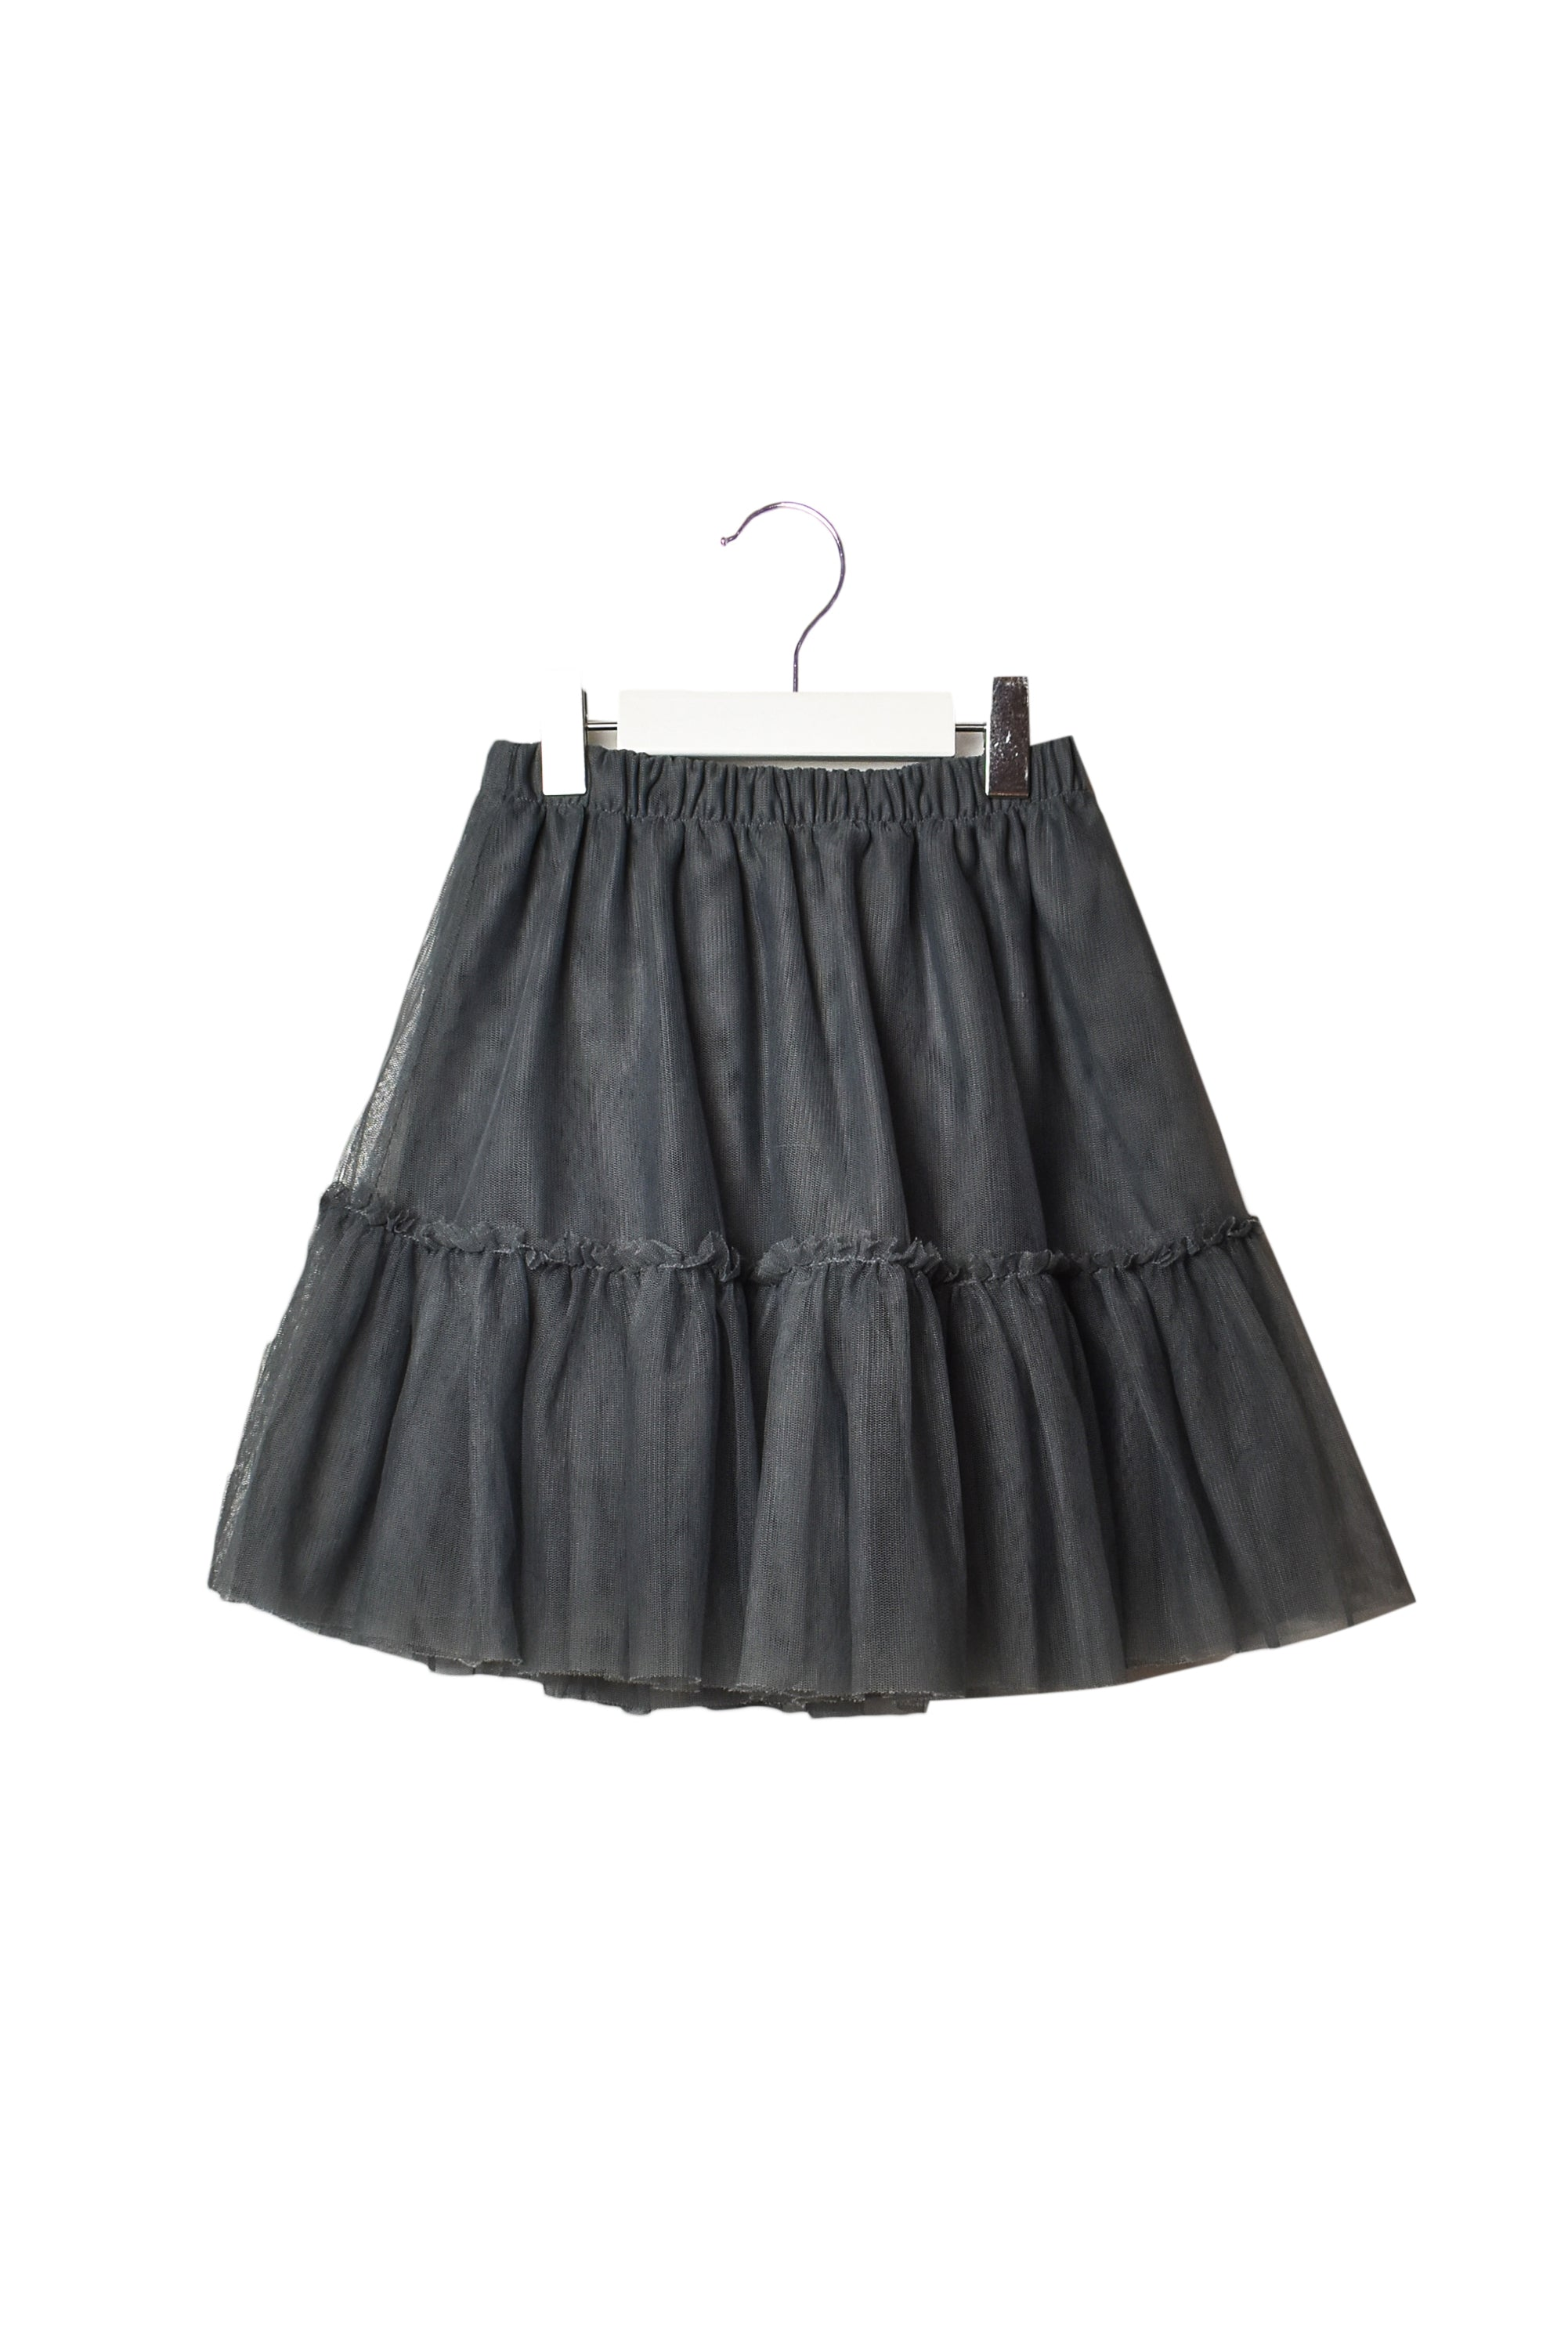 10008428 Seed Kids~Skirt 2-3T at Retykle